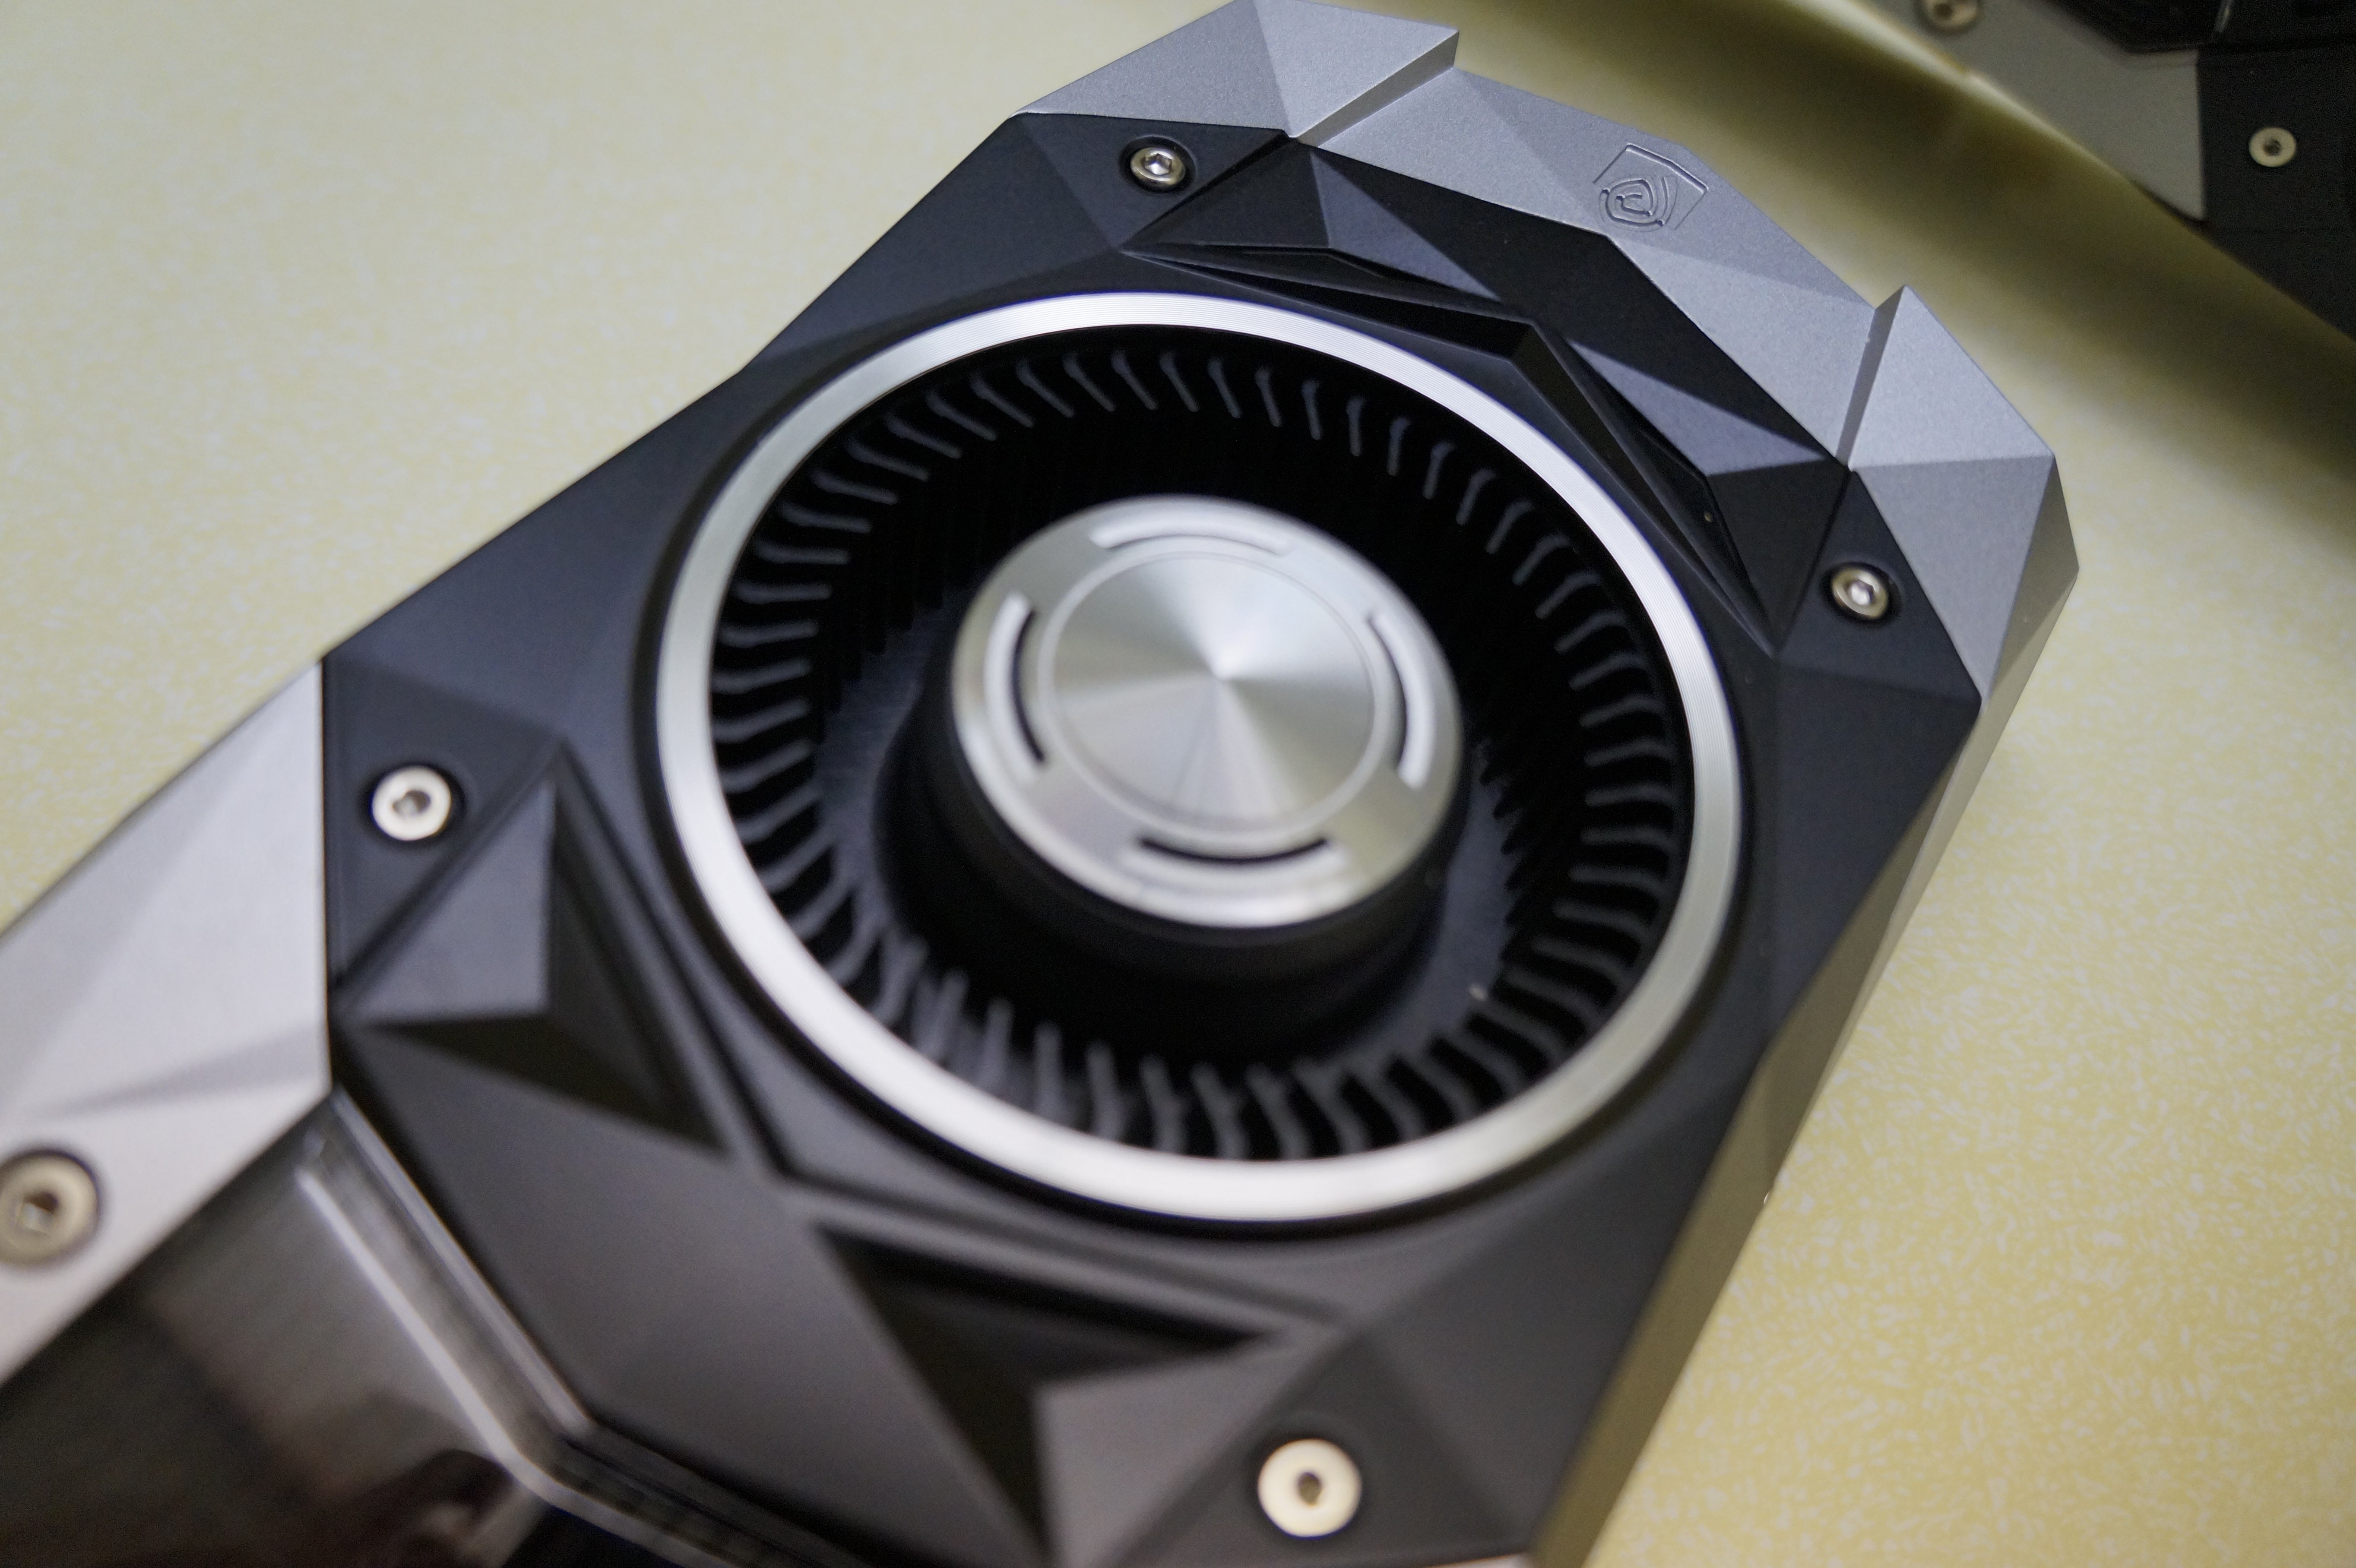 Nvidia GeForce GTX 1070 review: The new people's champion topples